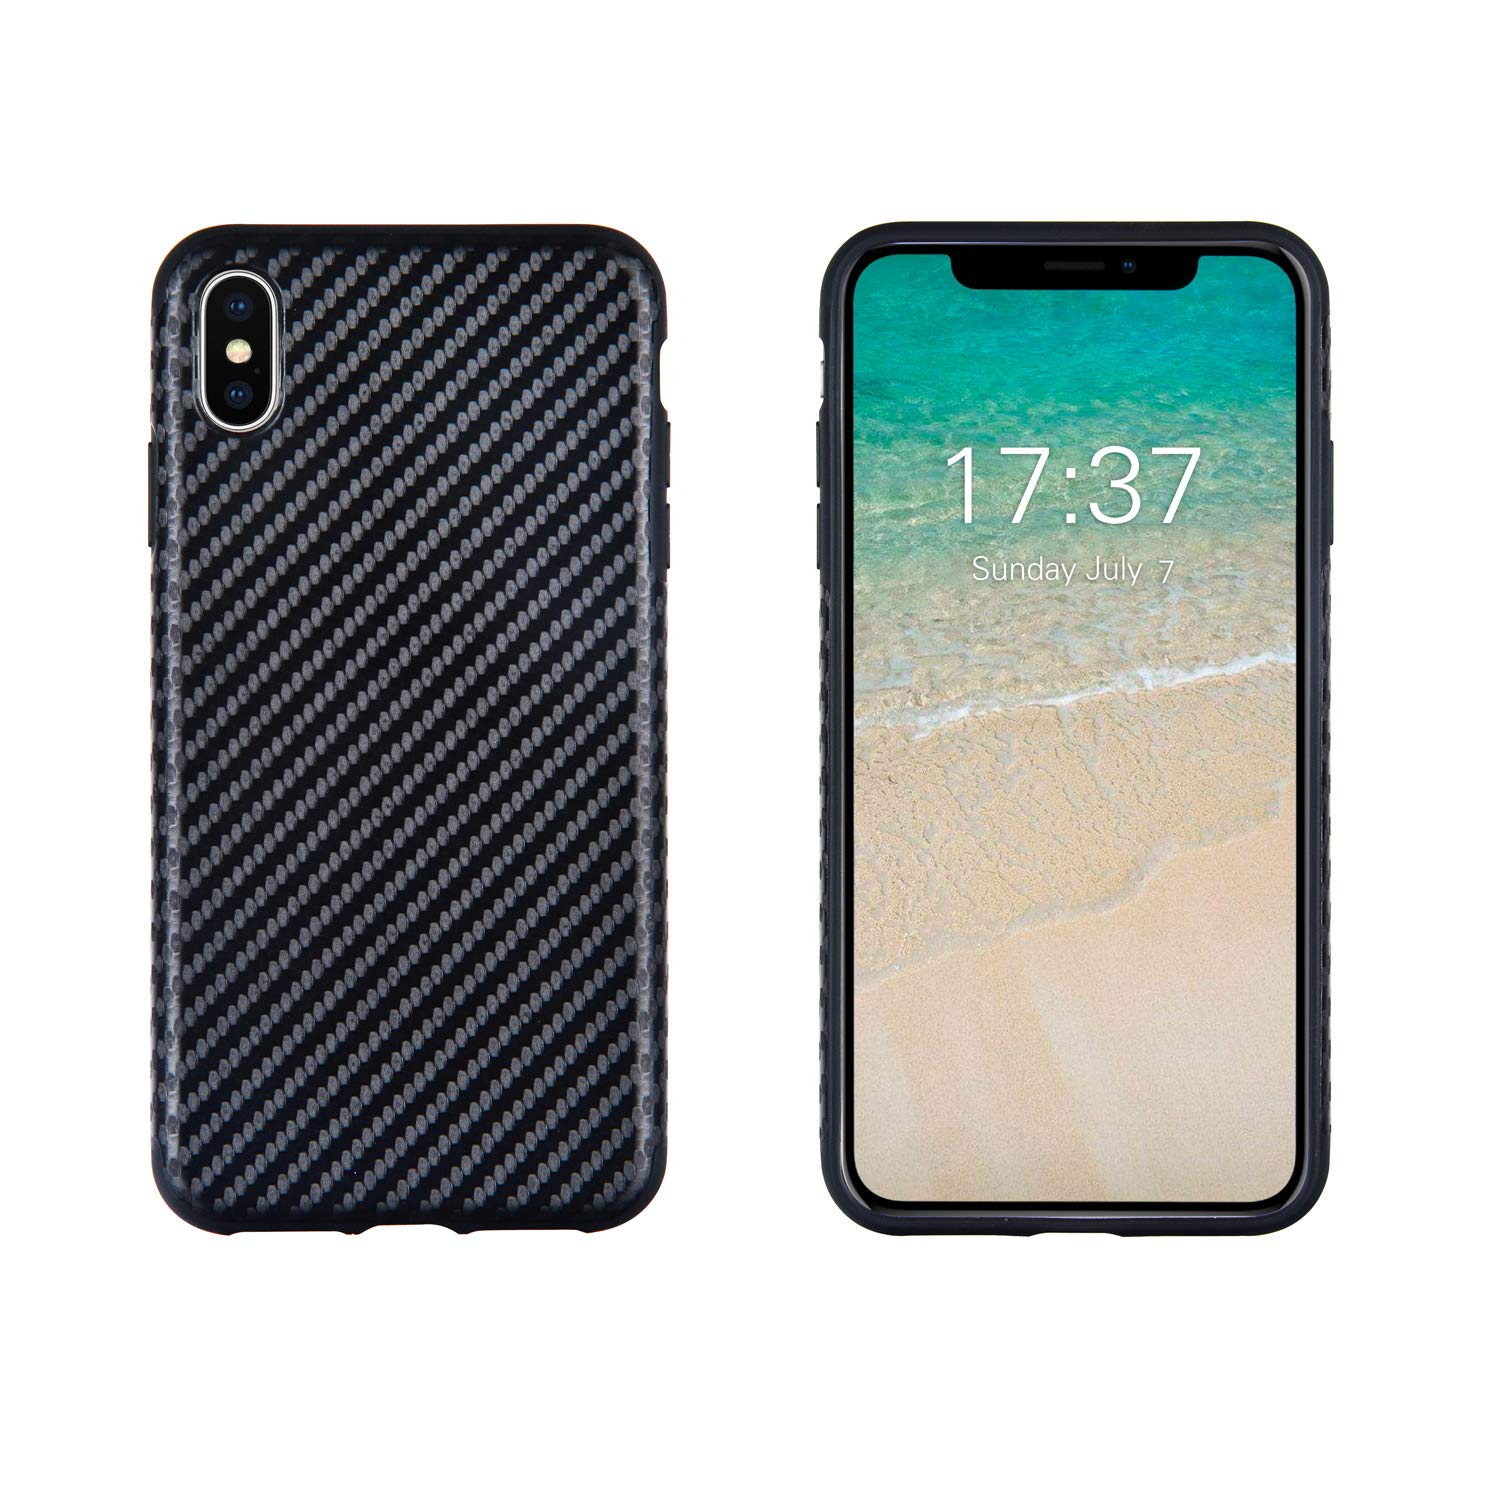 Case Compatible with iPhone XR / iPhone XS Max, Ultra Slim Protective Cell iPhone Cover Cases Compatible Apple iPhone XR / Apple iPhone XS Max, ...